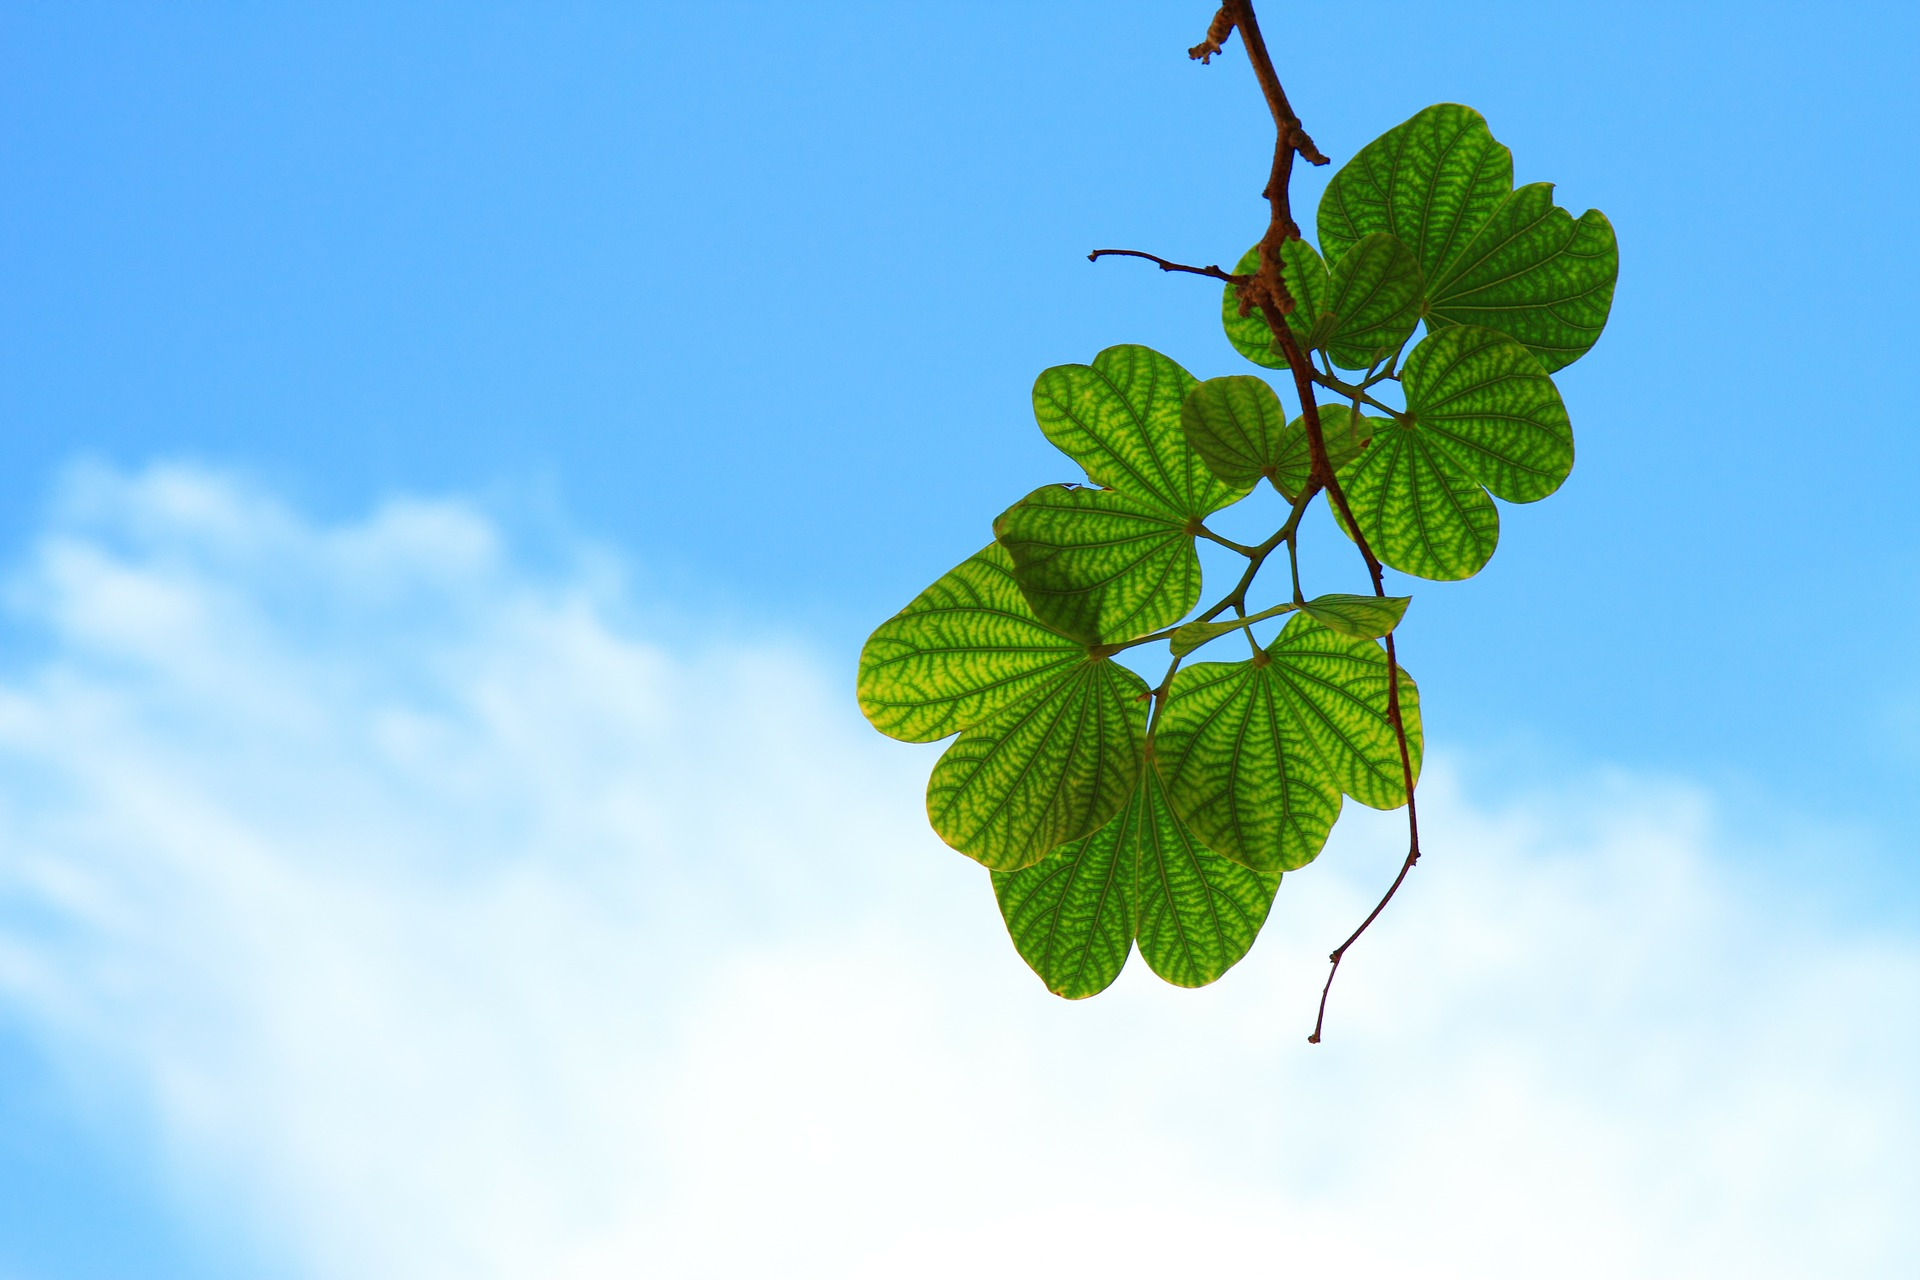 https://pixabay.com/en/leaves-twig-branch-sky-blue-cloud-15757/